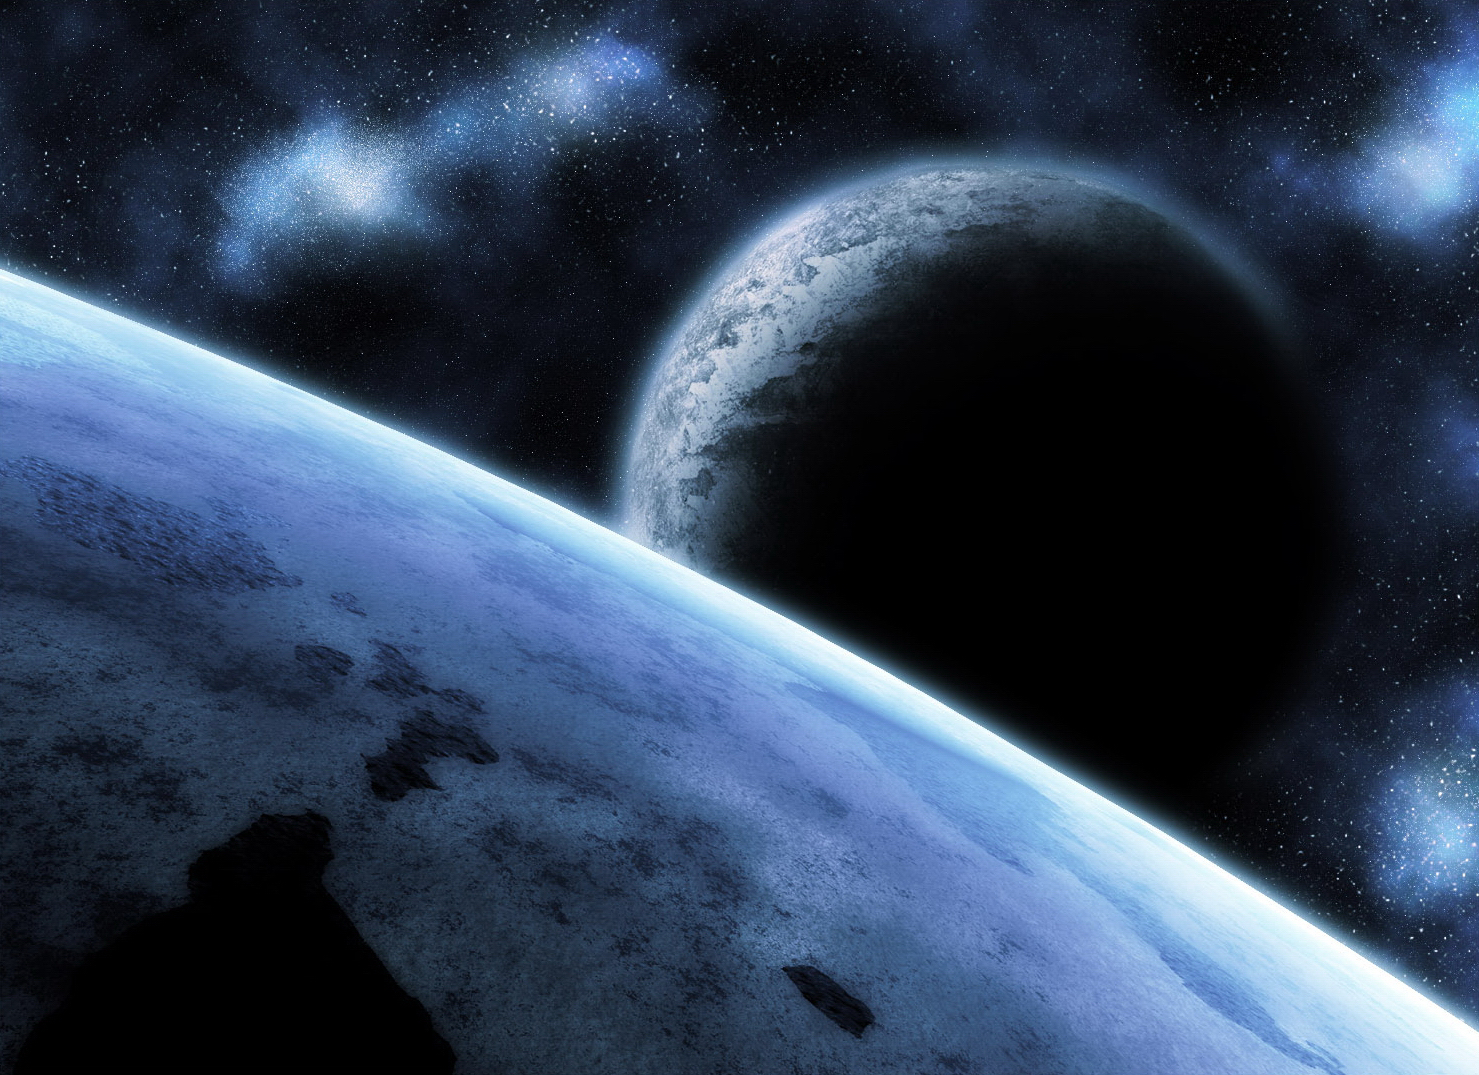 TOP HD WALLPAPERS: SPACE WALLPAPERS HD 1080p